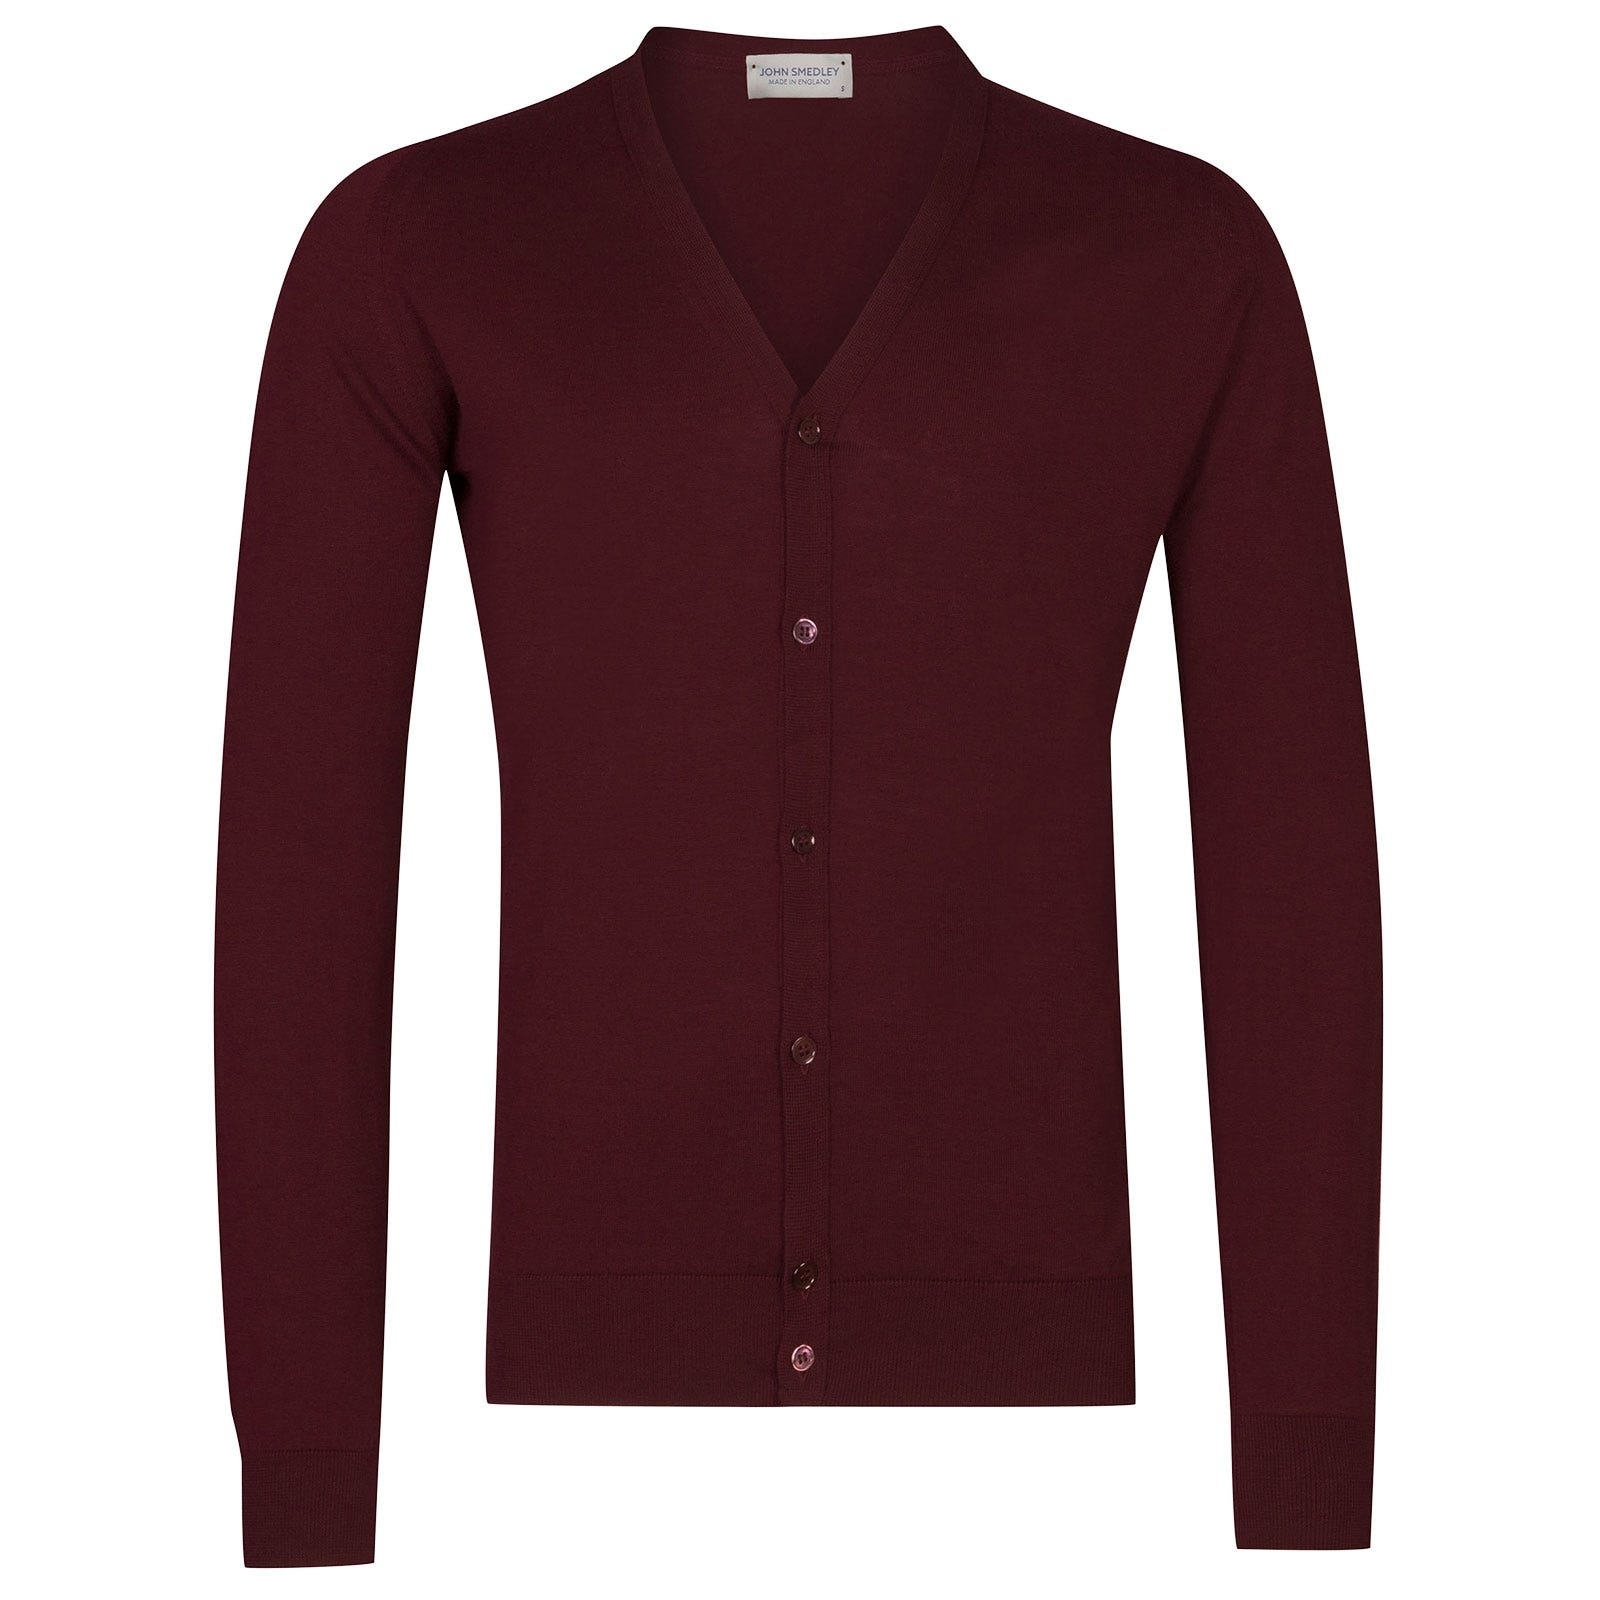 John Smedley Whitchurch Sea Island Cotton Cardigan in Bordeaux-M